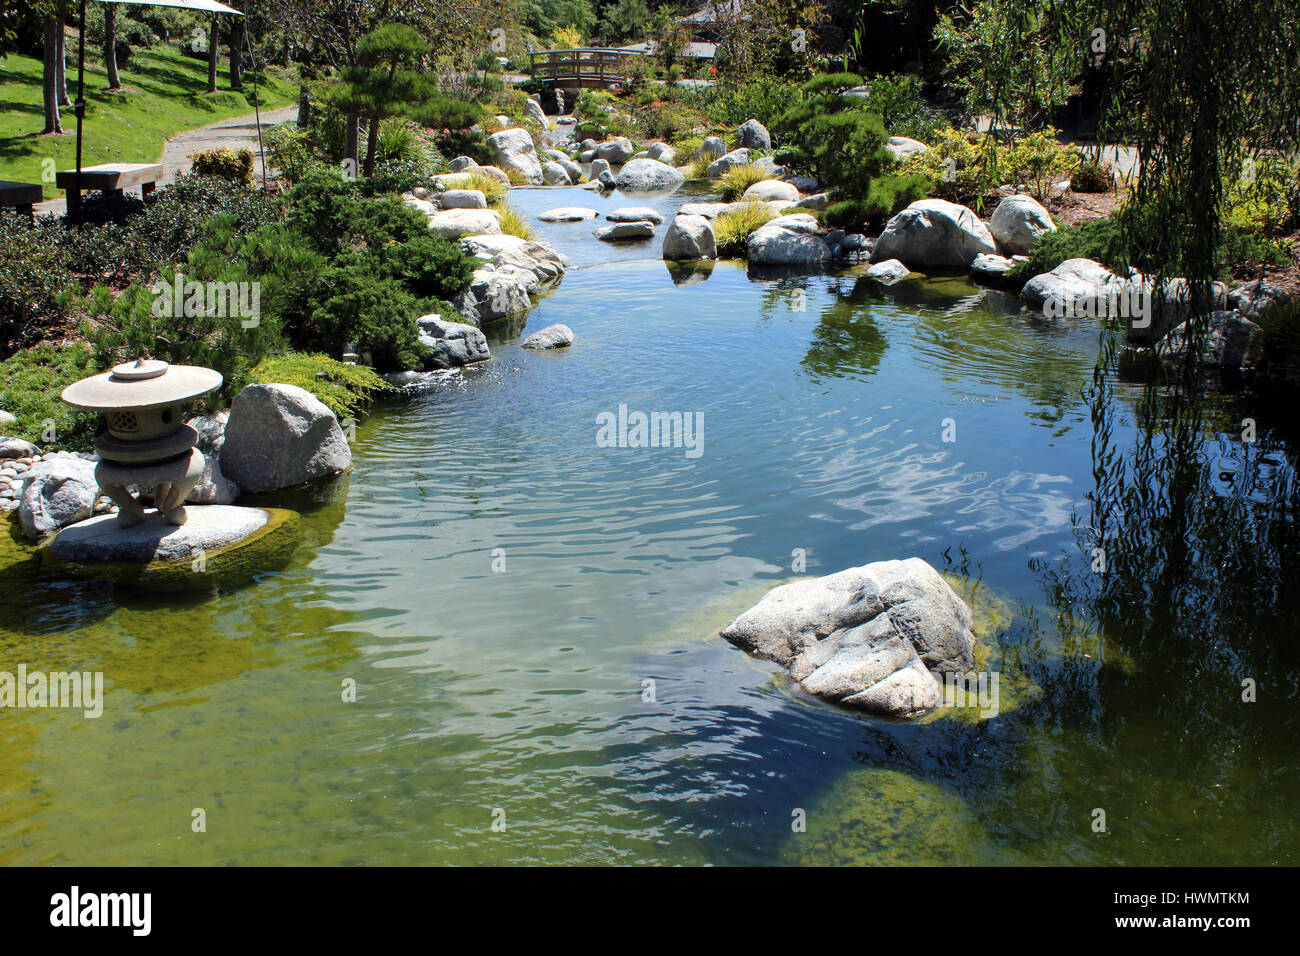 Beautiful Stream With Rocks And A Wooden Bridge In A Garden Setting